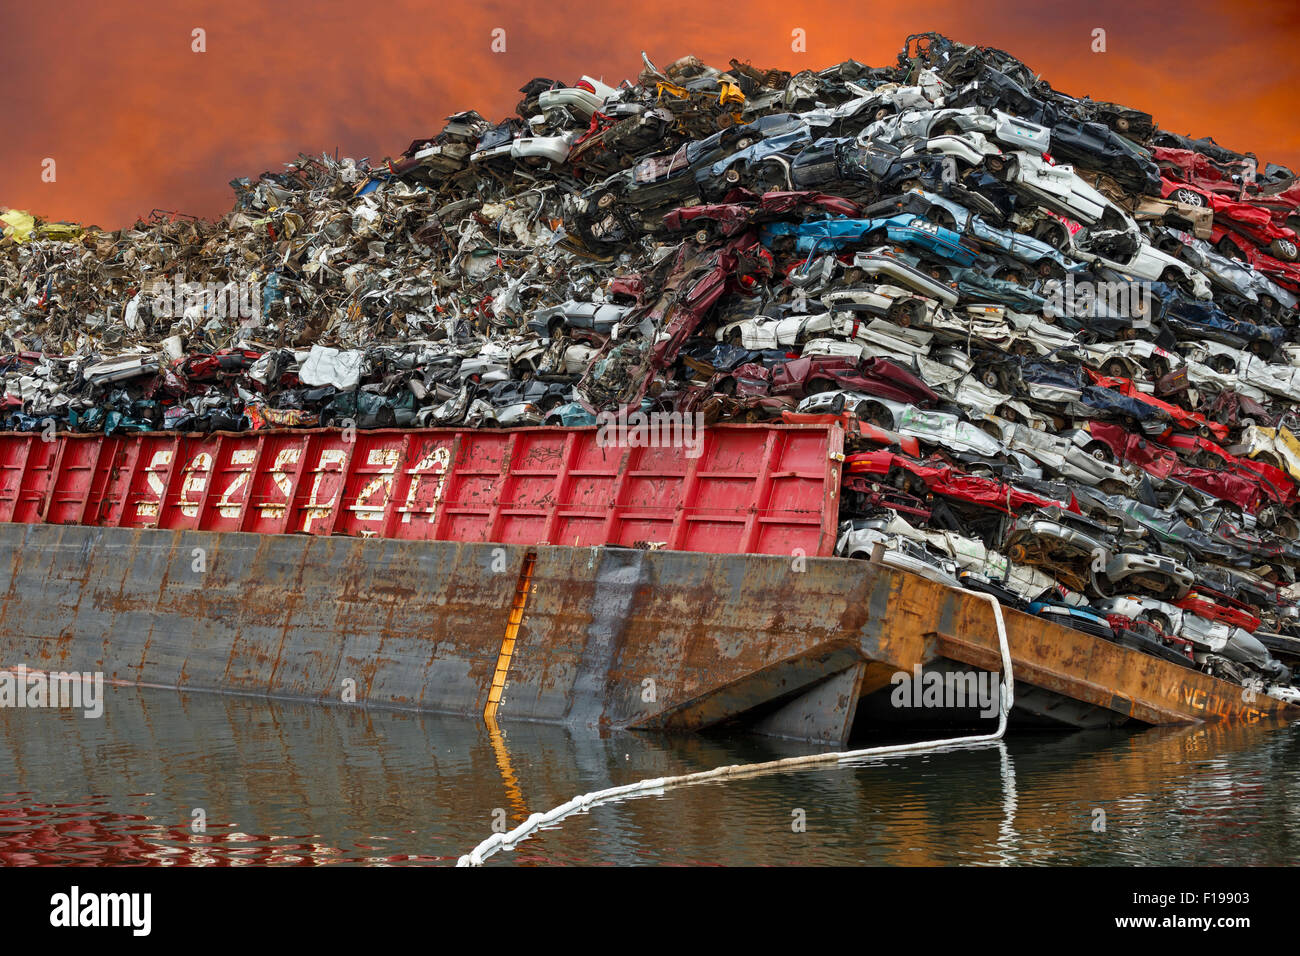 Capsized barge with crushed automobiles in Gorge Waterway-Victoria, British Columbia, Canada. Note-Digital composite. - Stock Image